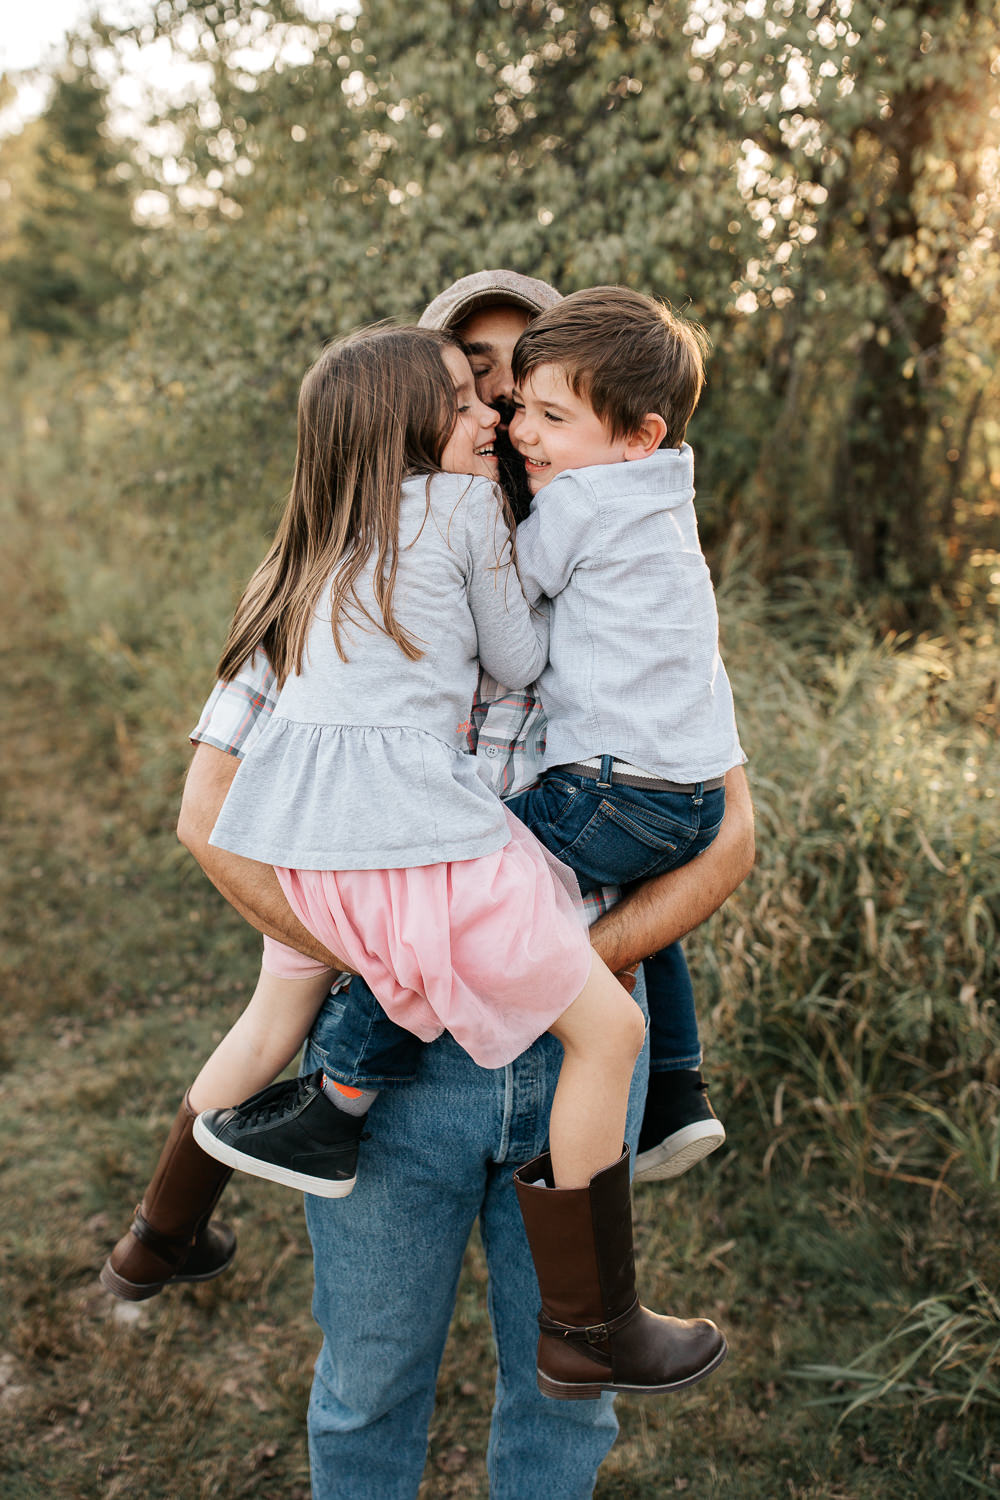 father standing in field holding 5 year old girl and 4 year old boy in his arms as daughter and son hug him, dad's face barely visible -Stouffville Lifestyle Photography